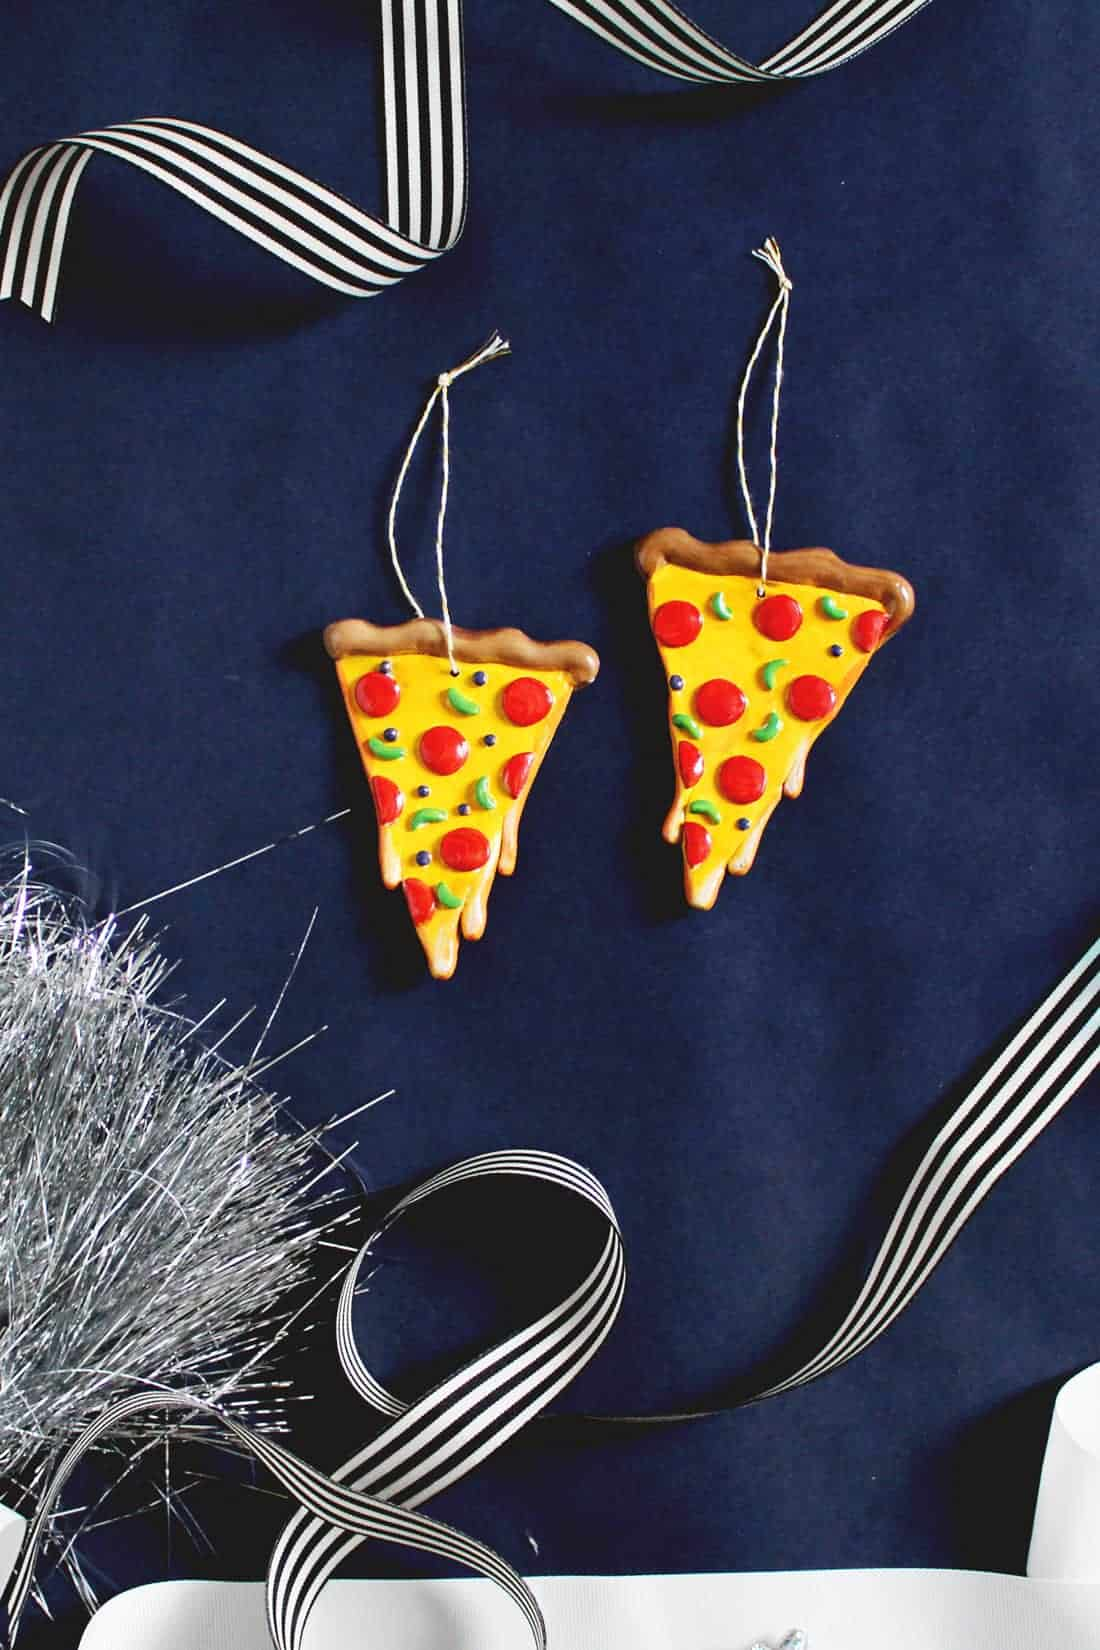 DIY Cheesy Pizza Ornament for Christmas | Fish & Bull